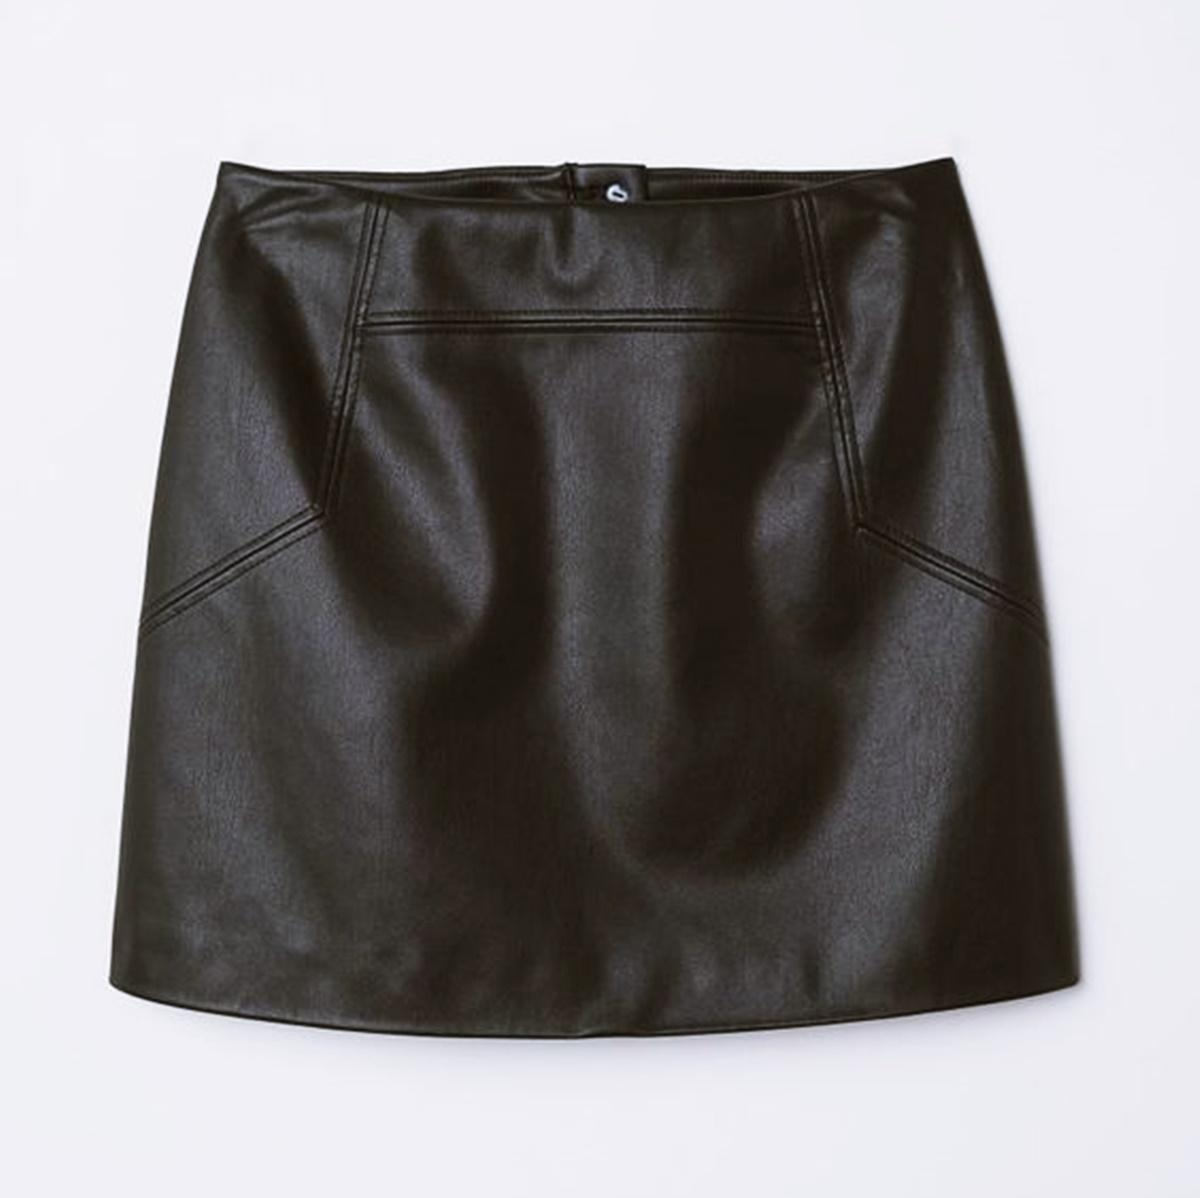 One leather skirt, four ways